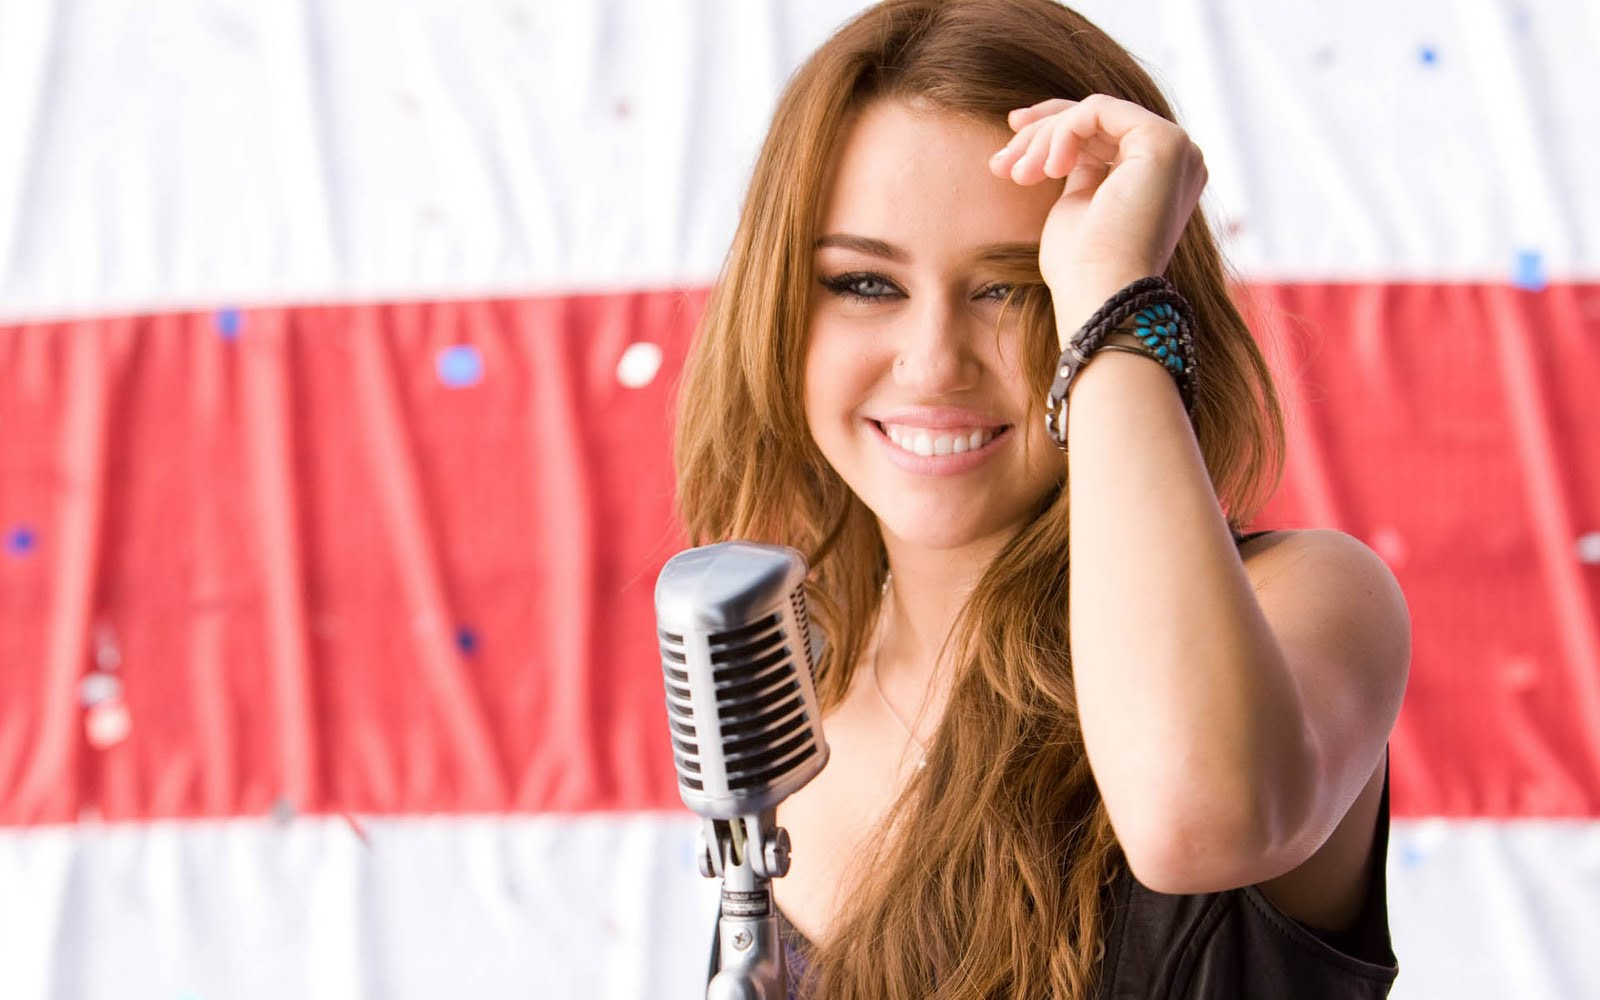 Miley-Cyrus-http-www-firsthd-com-miley-cyrus-html-wallpaper-wp6004898